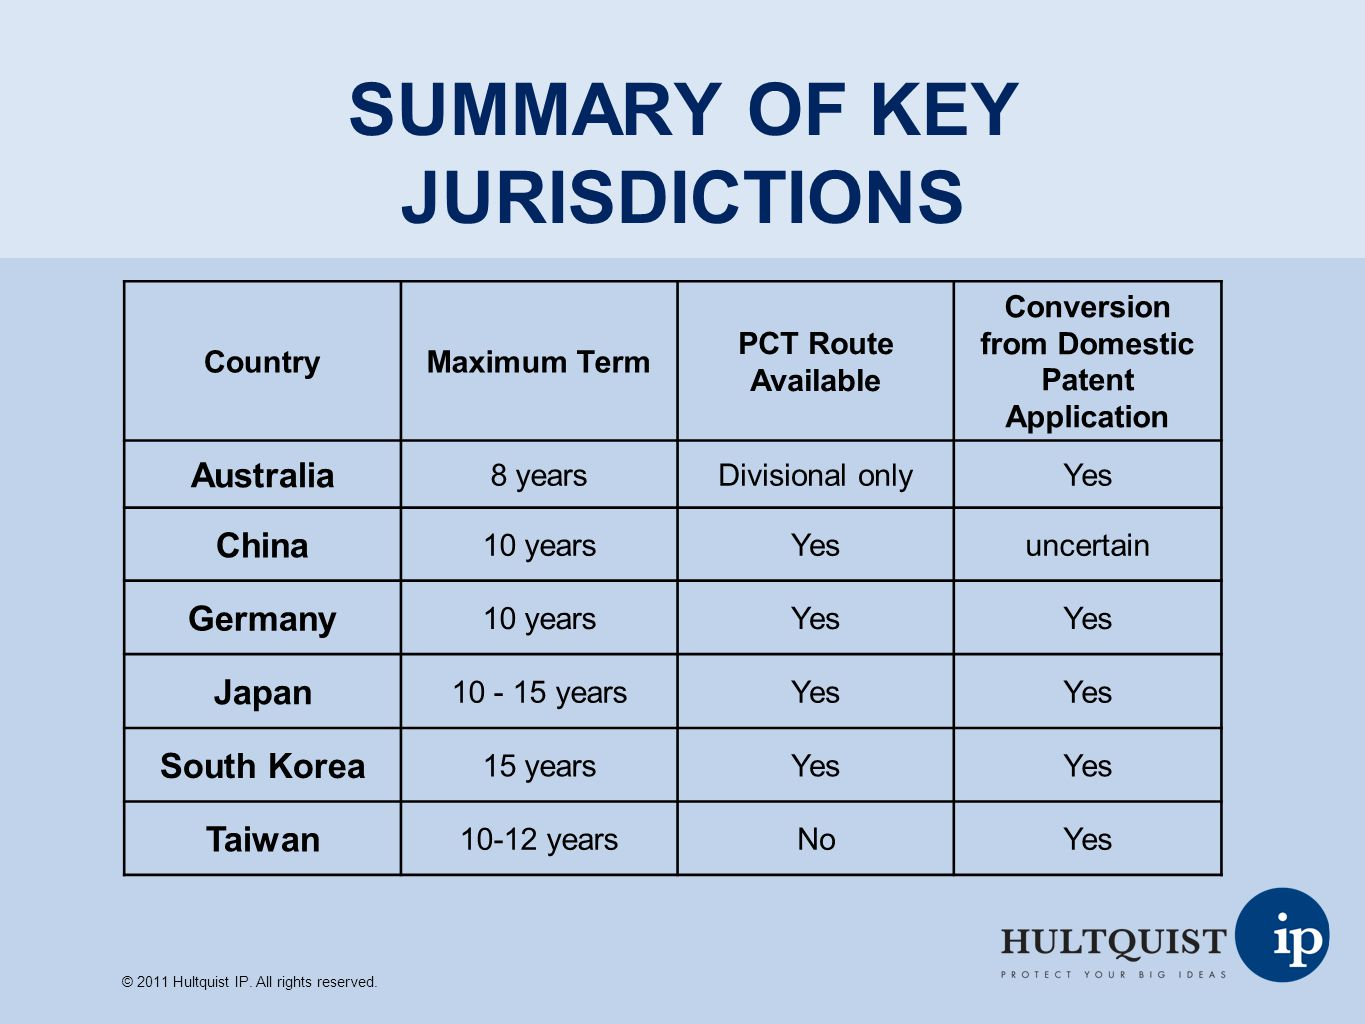 SUMMARY OF KEY JURISDICTIONS